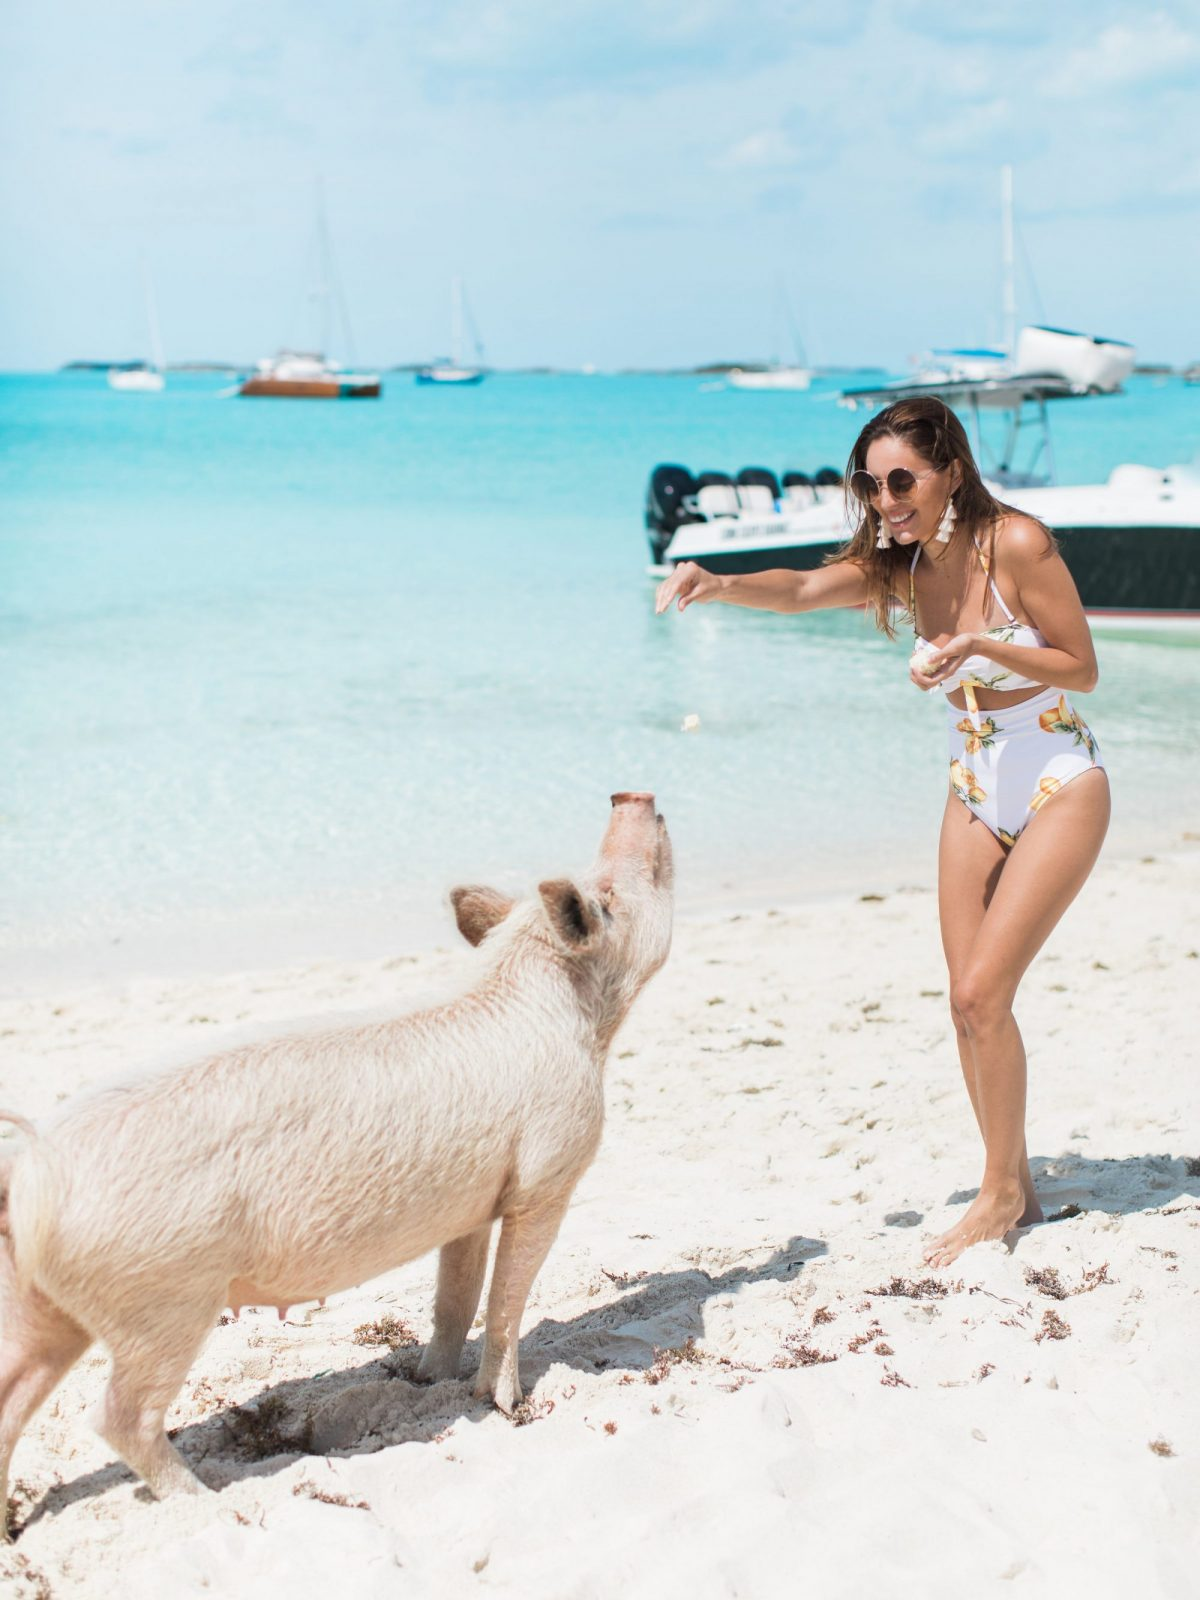 peace n plenty exuma bahamas, exuma travel guide, where to stay in exuma, what to do in exuma, swimming pigs exuma, swimming with sharks exuma, iguanas exuma, where to eat in exuma, what to do in exuma, exuma travel guide